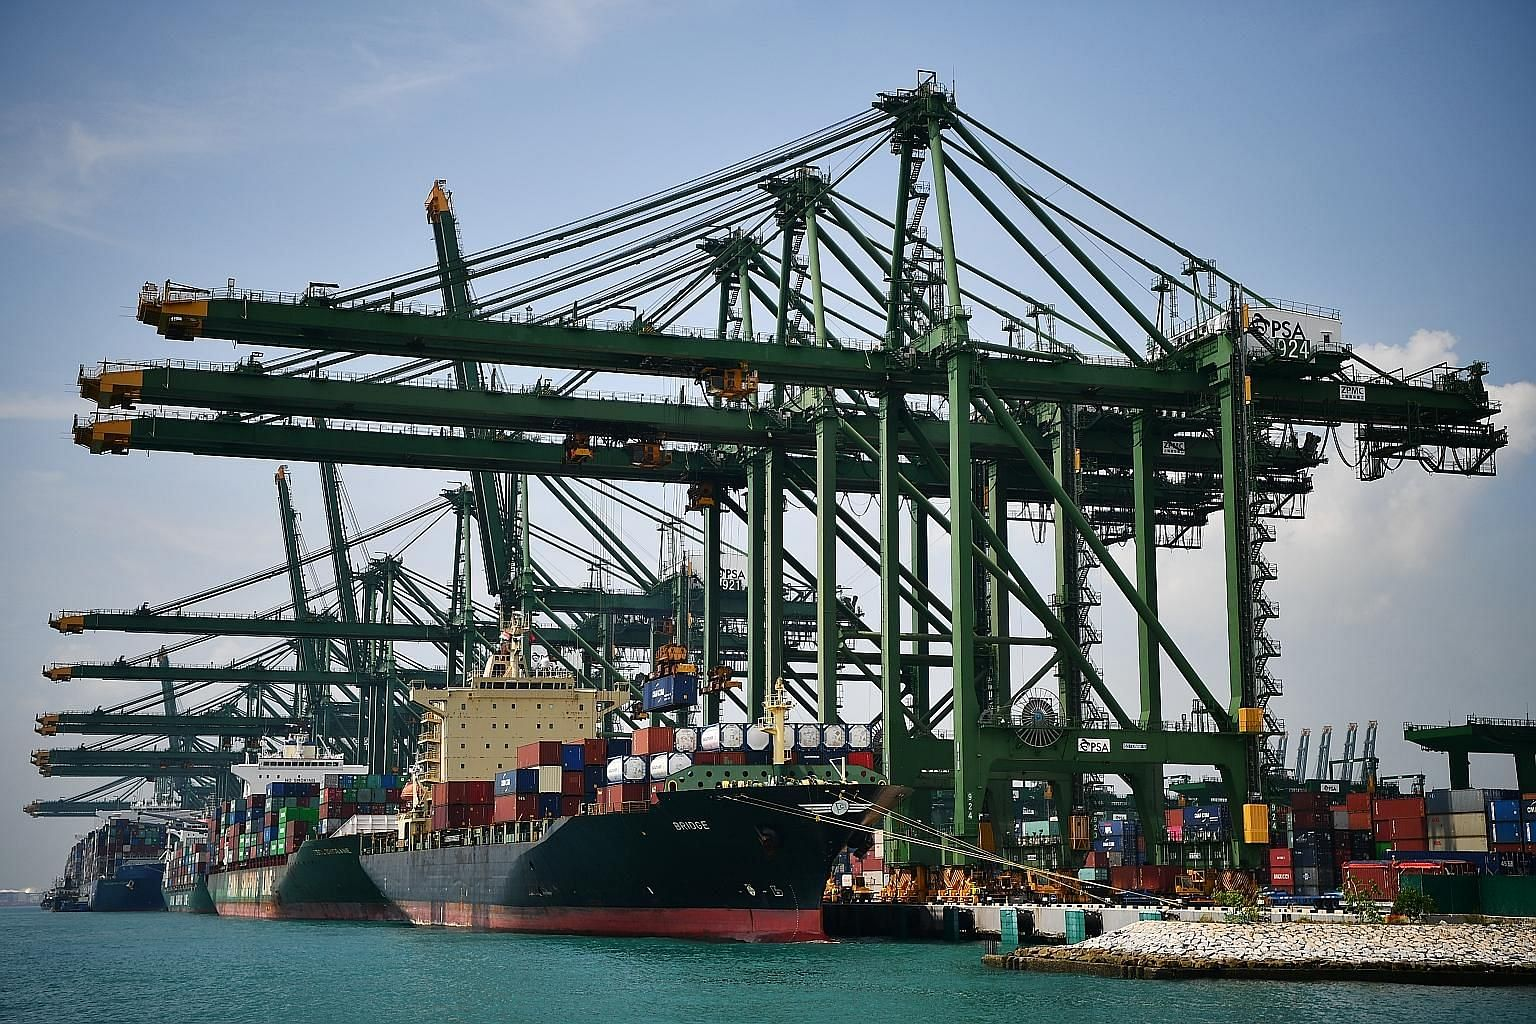 Activity at Pasir Panjang Terminal last October. The total number of vessel arrivals has fallen 39.8 per cent to 6,701 in June from 11,138 a year ago, while container volumes have dropped by 1 per cent in the first six months of this year from a year